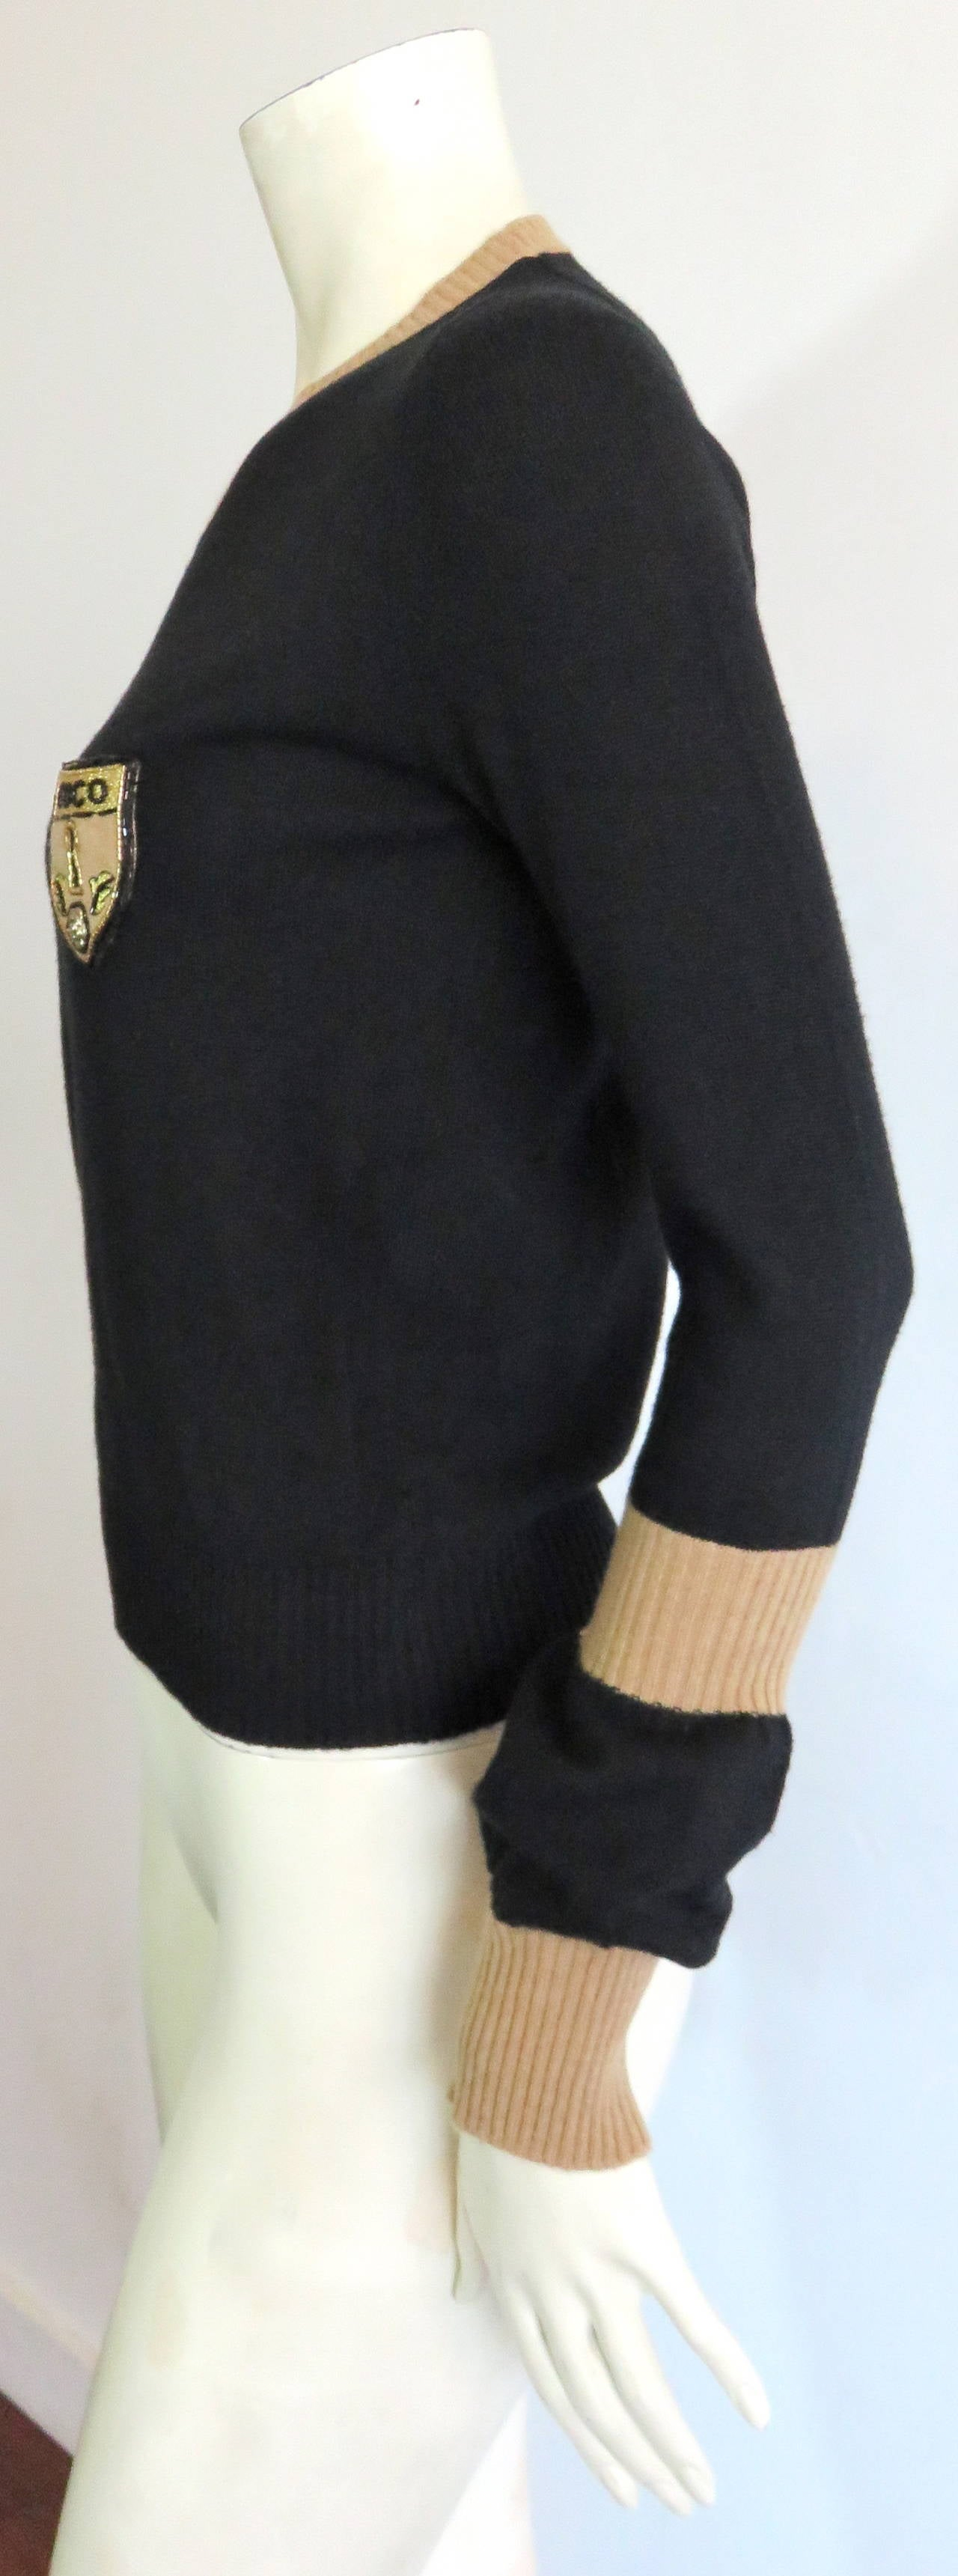 chanel paris pure cashmere coco shield sweater at 1stdibs. Black Bedroom Furniture Sets. Home Design Ideas